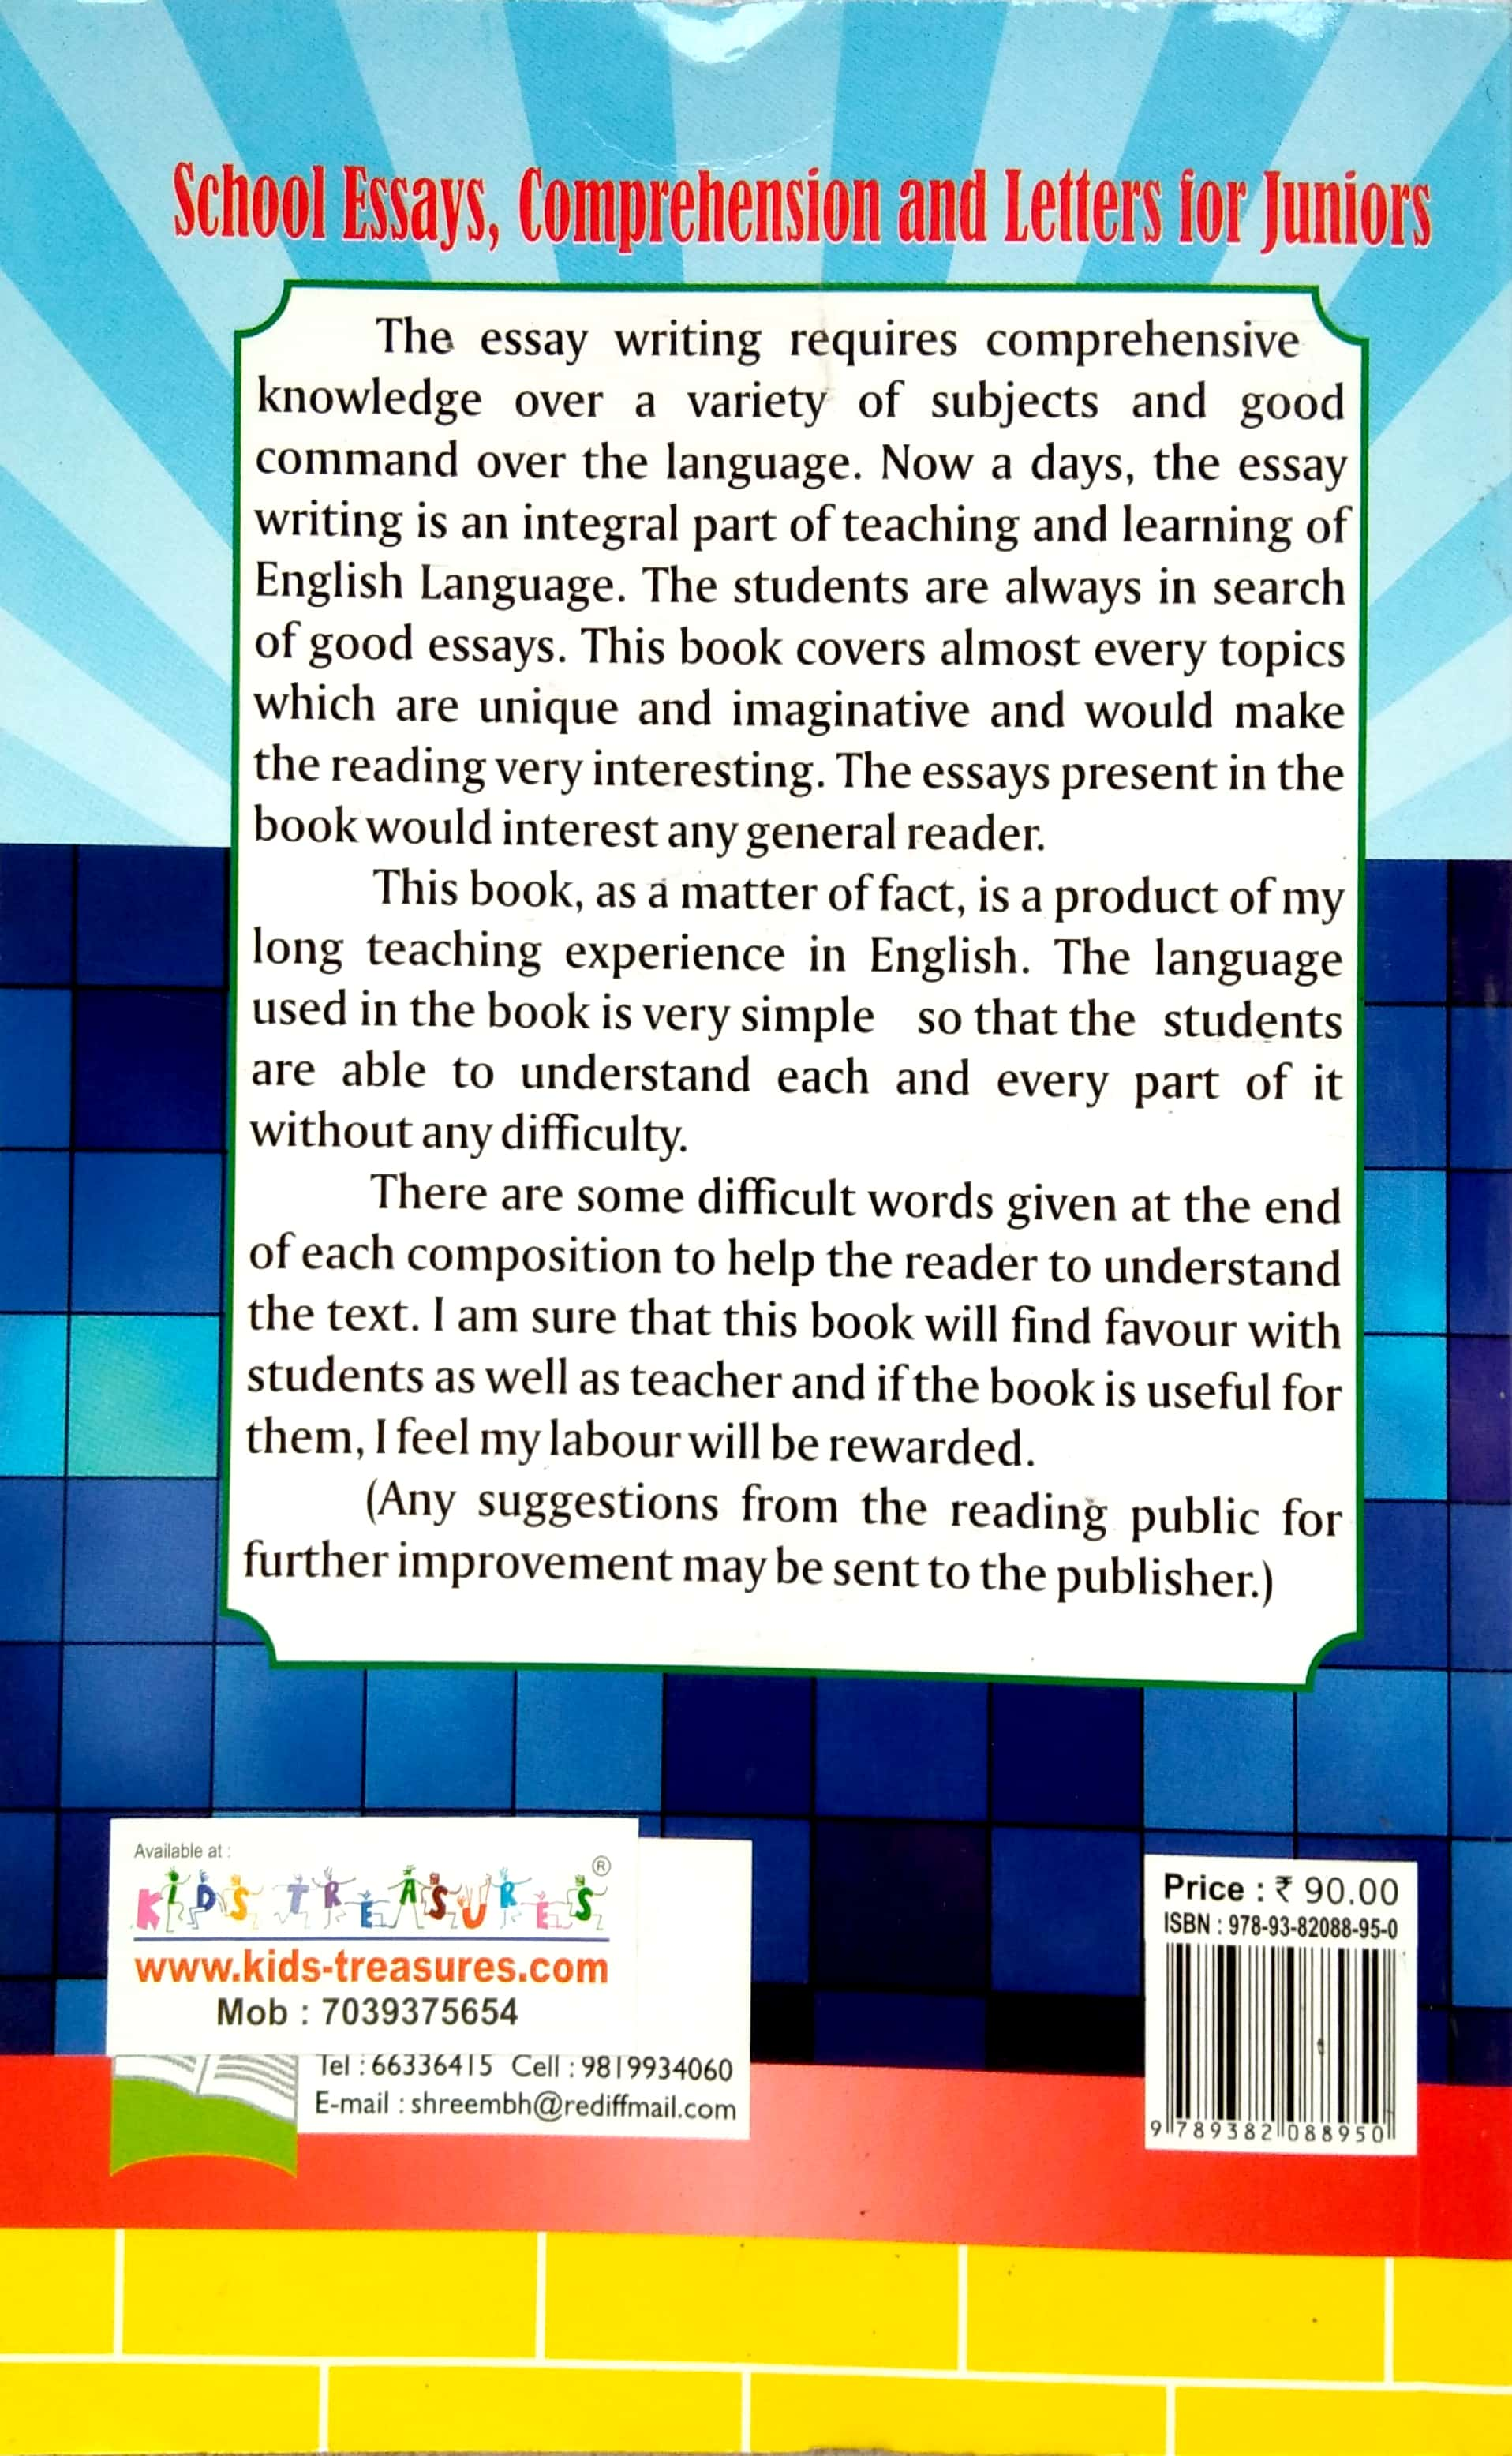 School Essays, Comprehension & Letters For Juniors